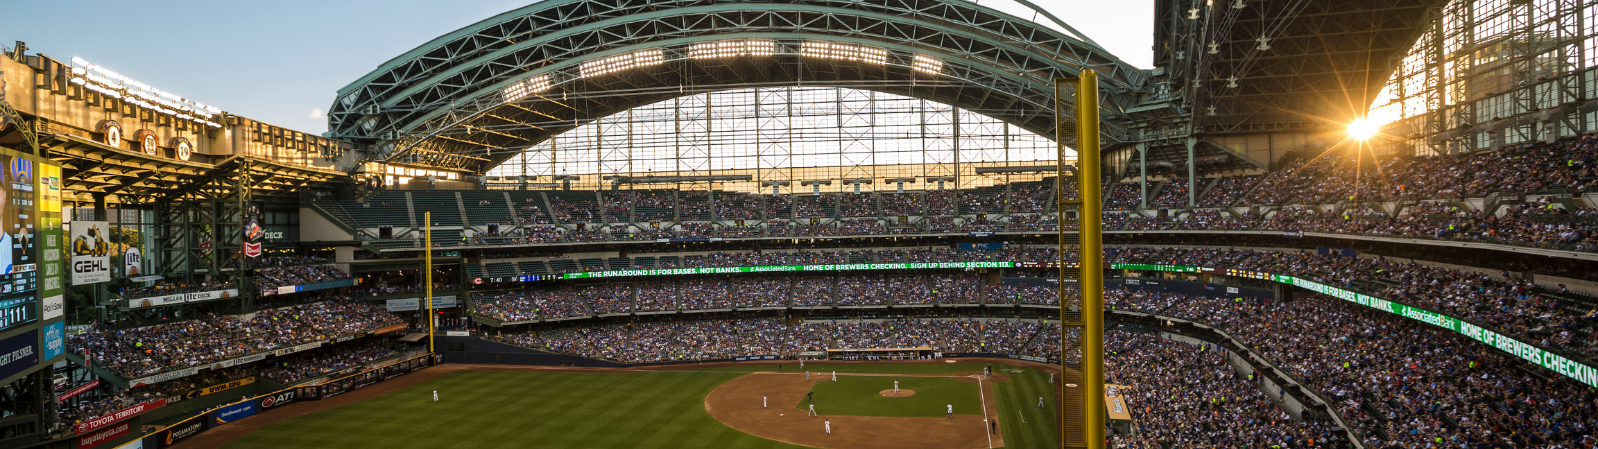 Miller Park in Milwaukee, Wisconsin